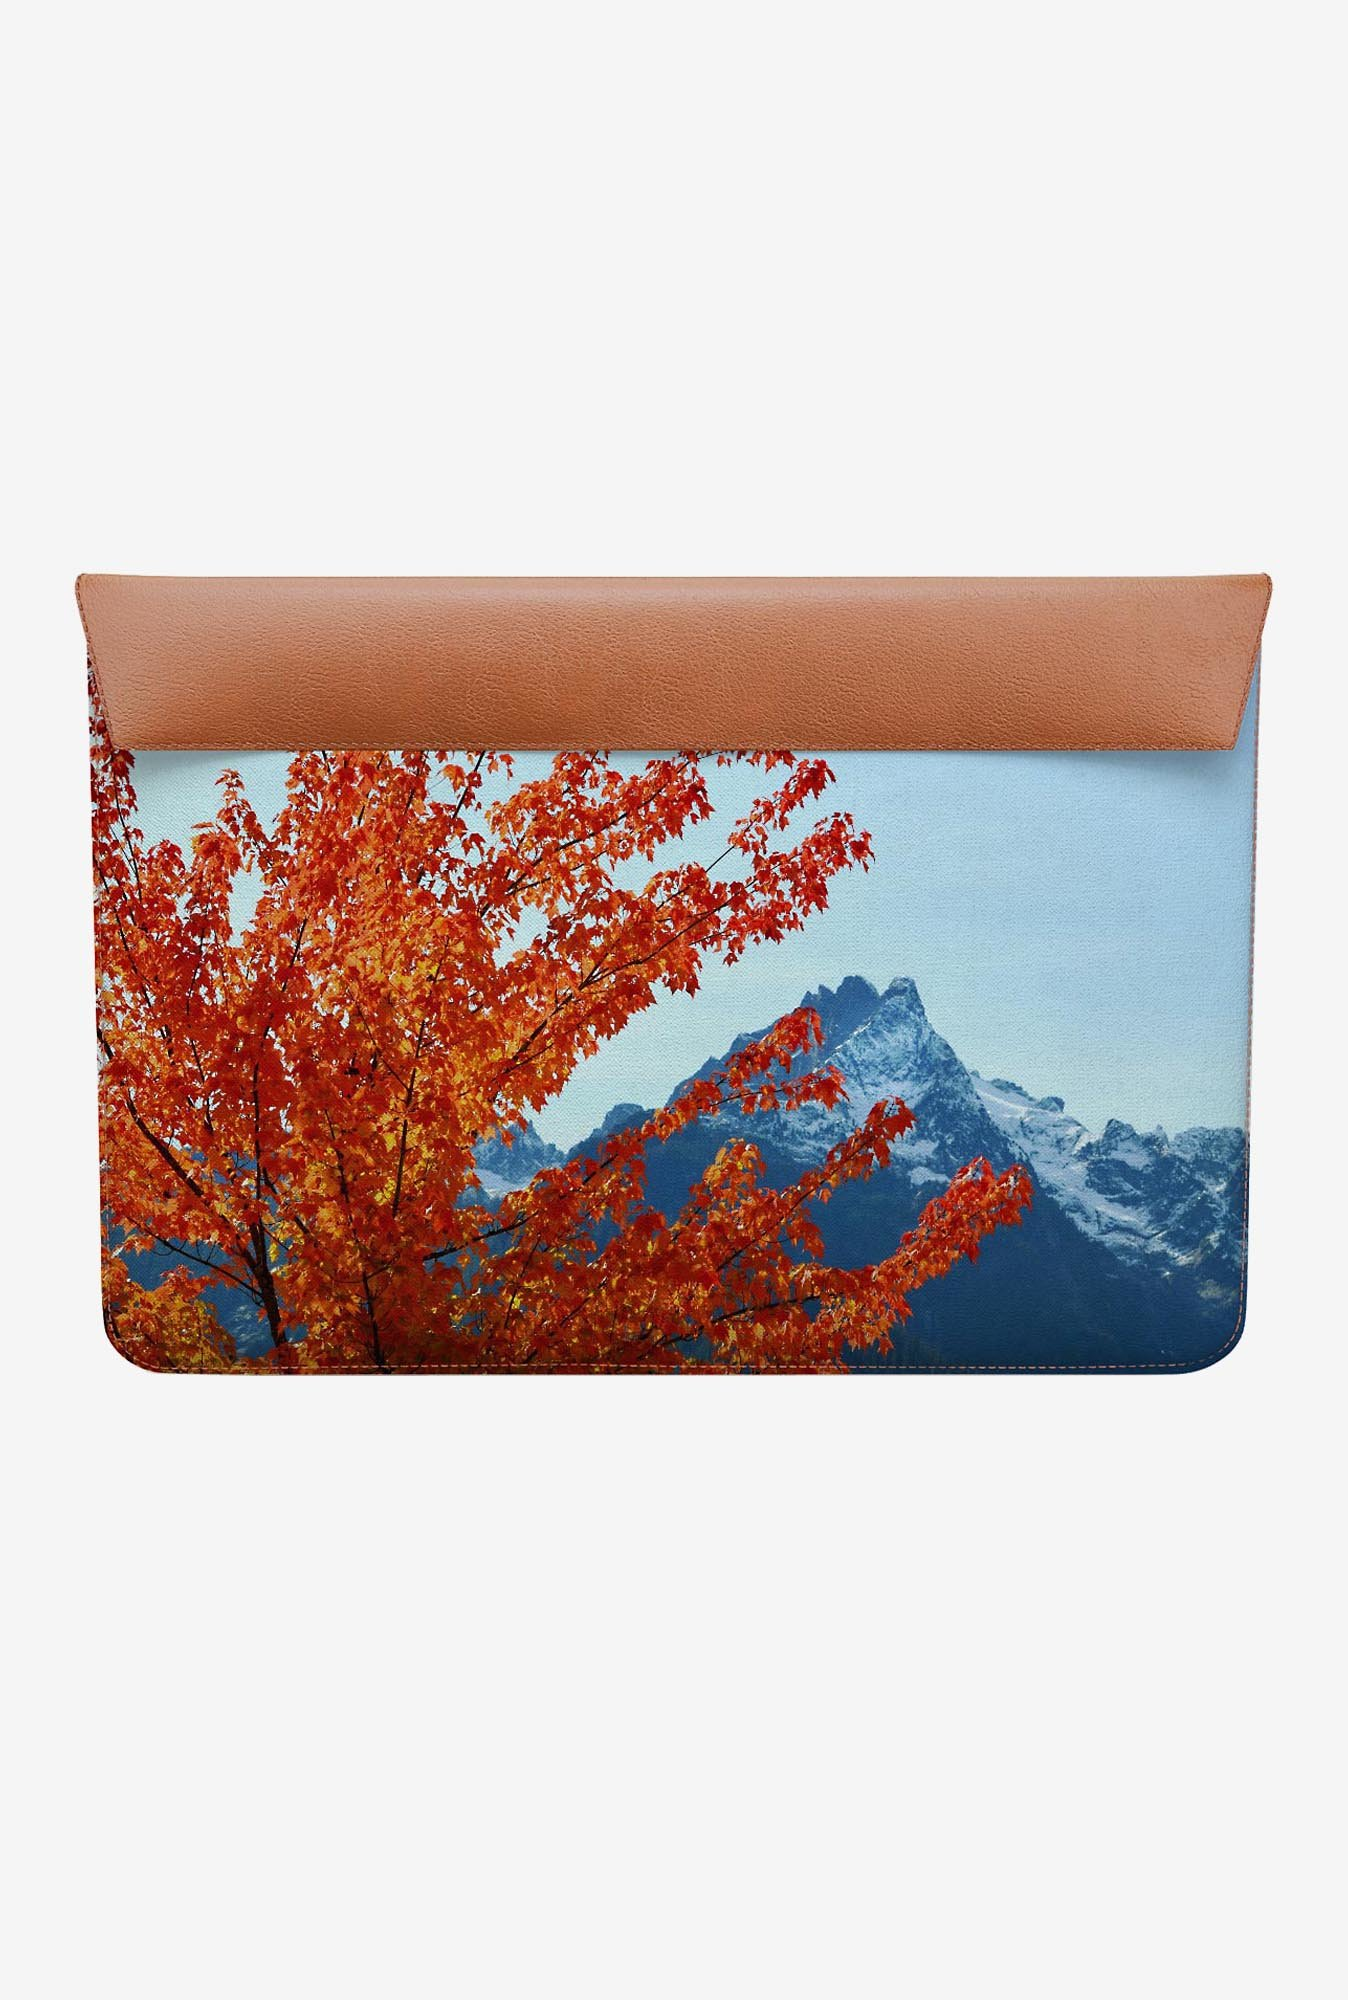 DailyObjects Near Of Far MacBook Air 11 Envelope Sleeve